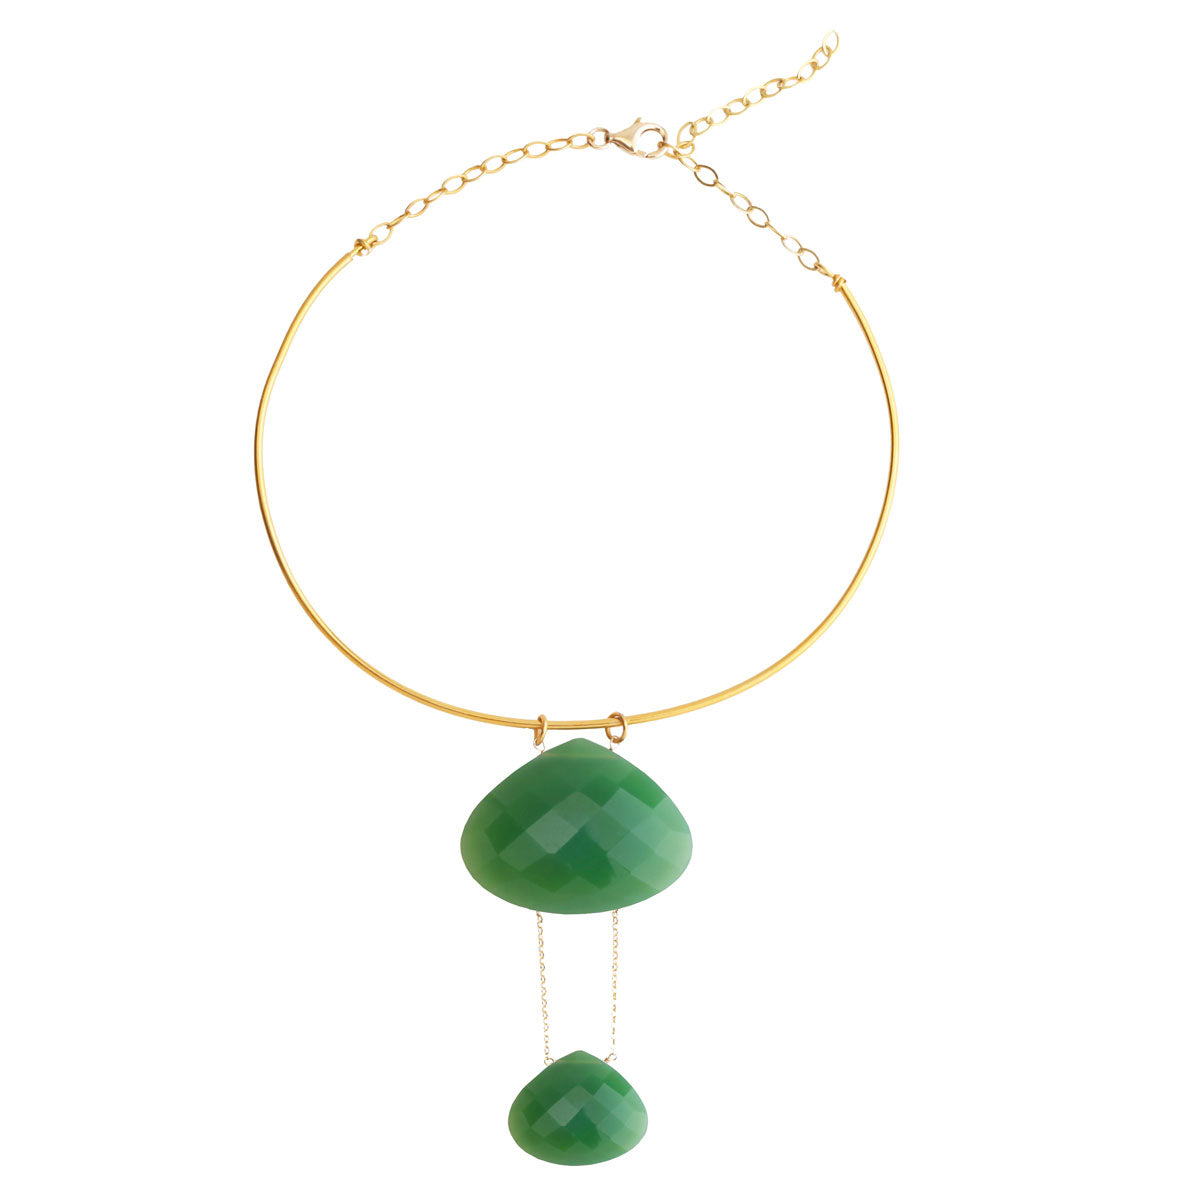 stones chrysoprase gold gallery jewelry neuwirth lyst yellow necklace with irene product